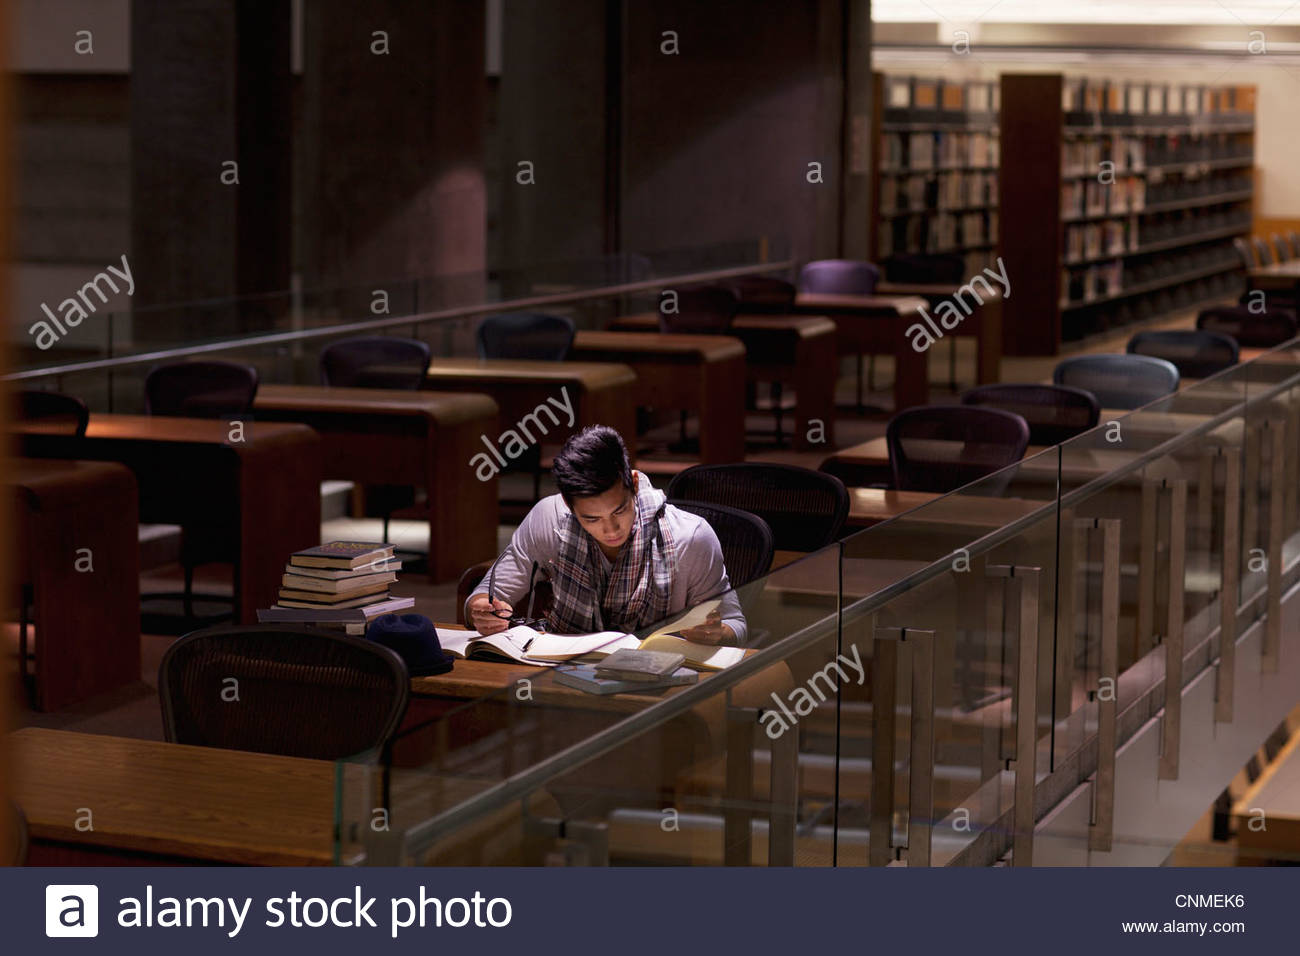 Student working in library at night Stock Photo